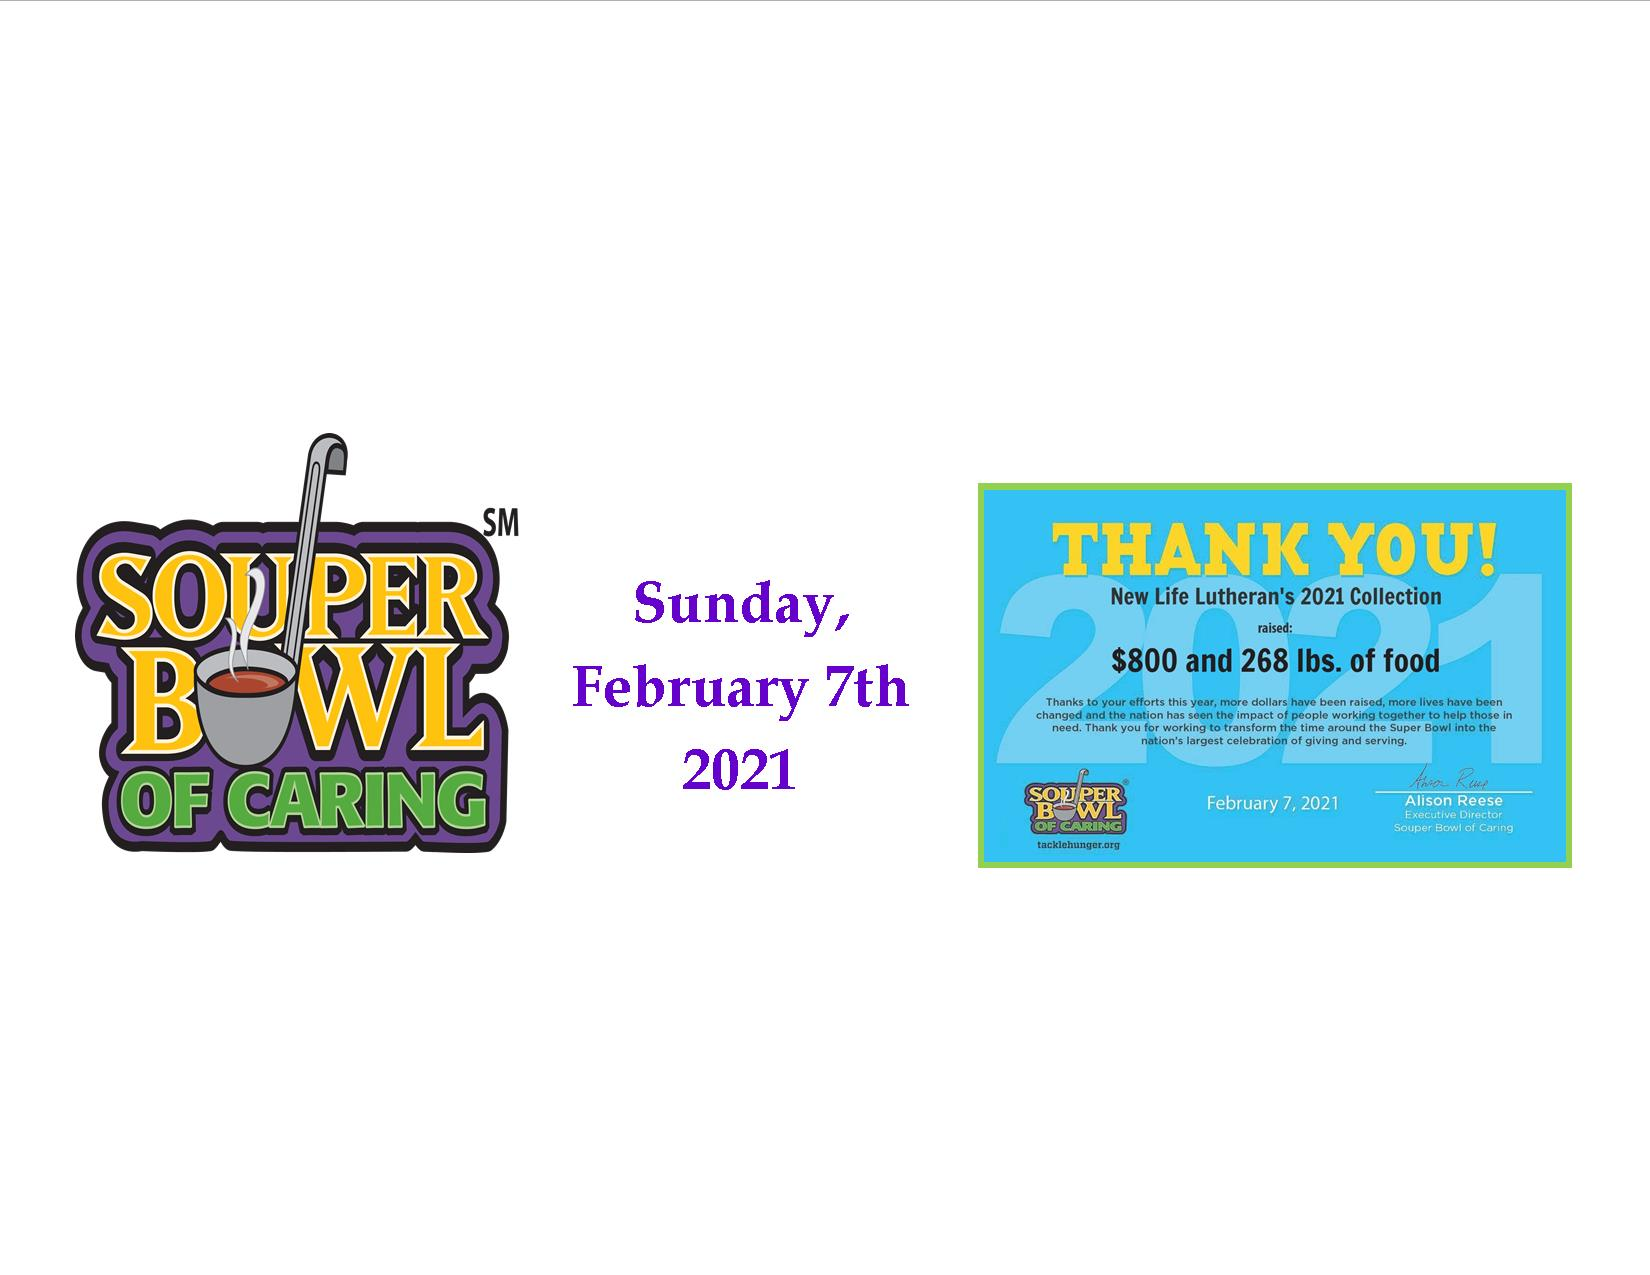 Souper Bowl of Caring 2021 results